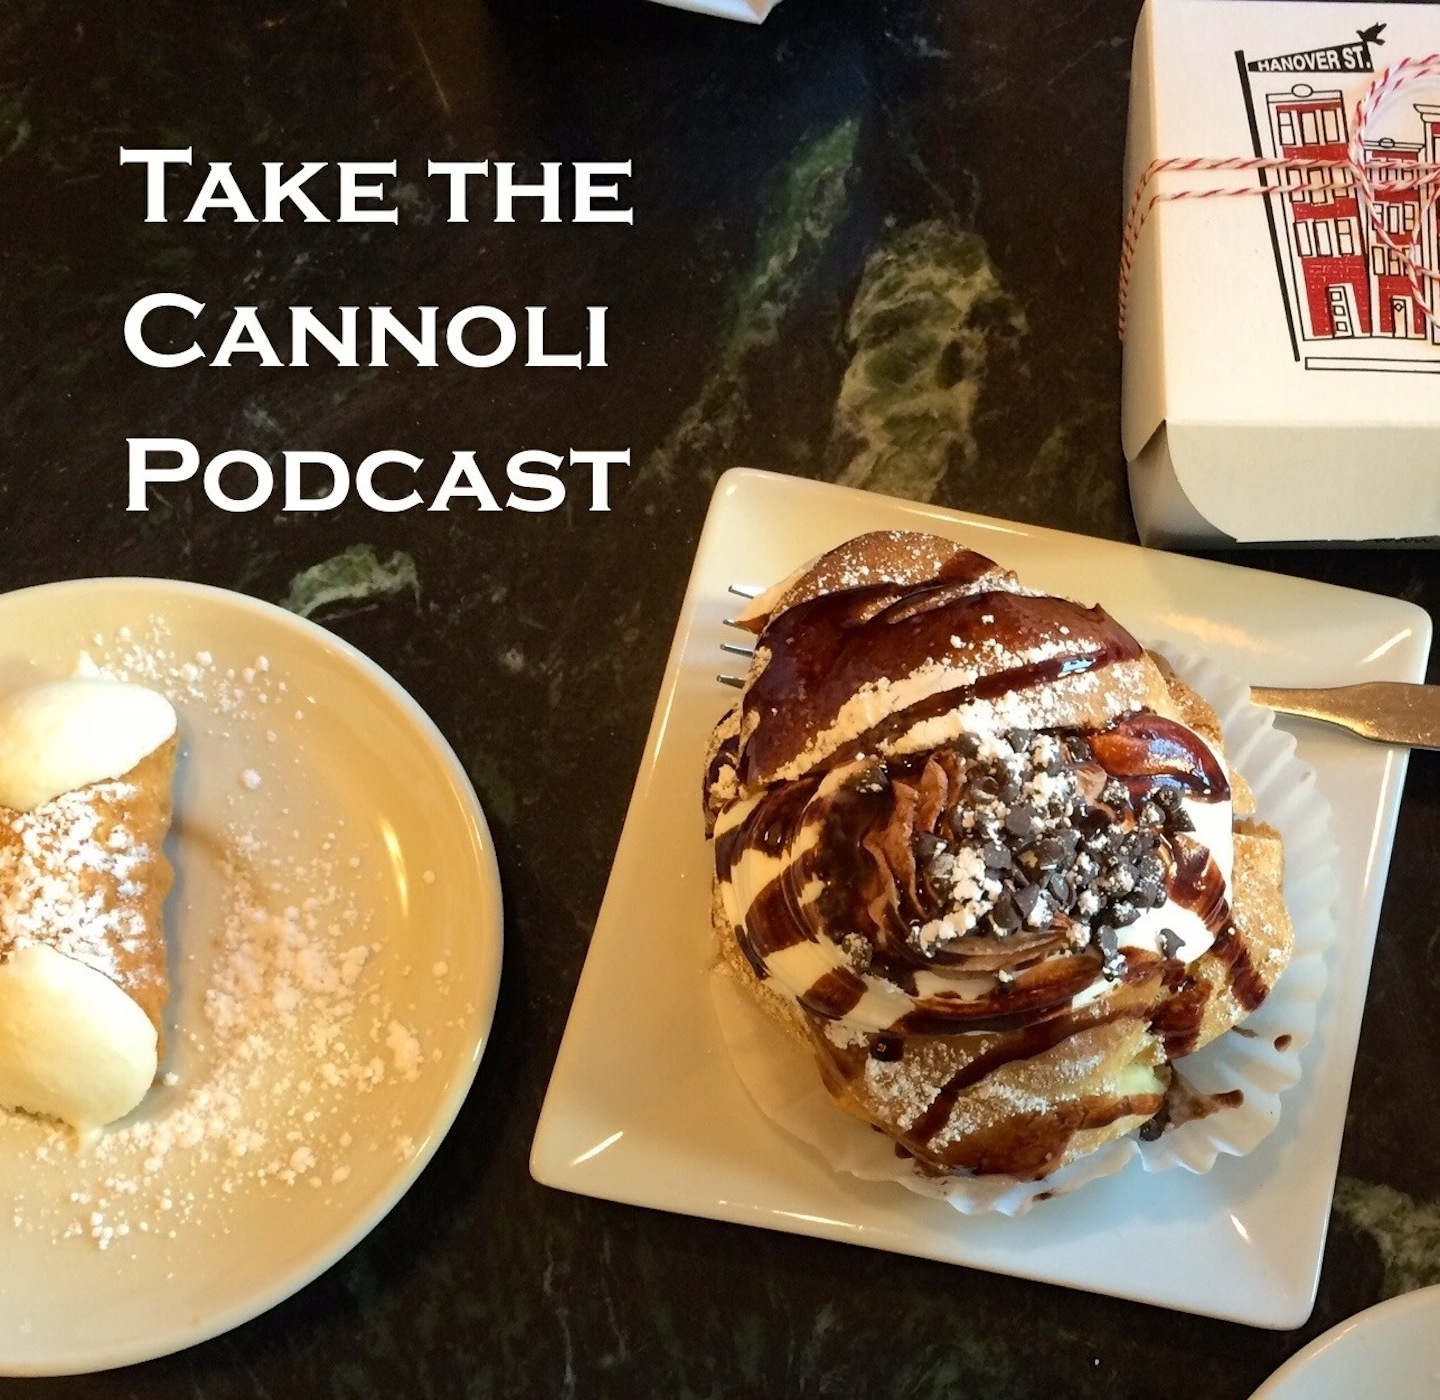 Podcast Episodes – take the cannoli podcast